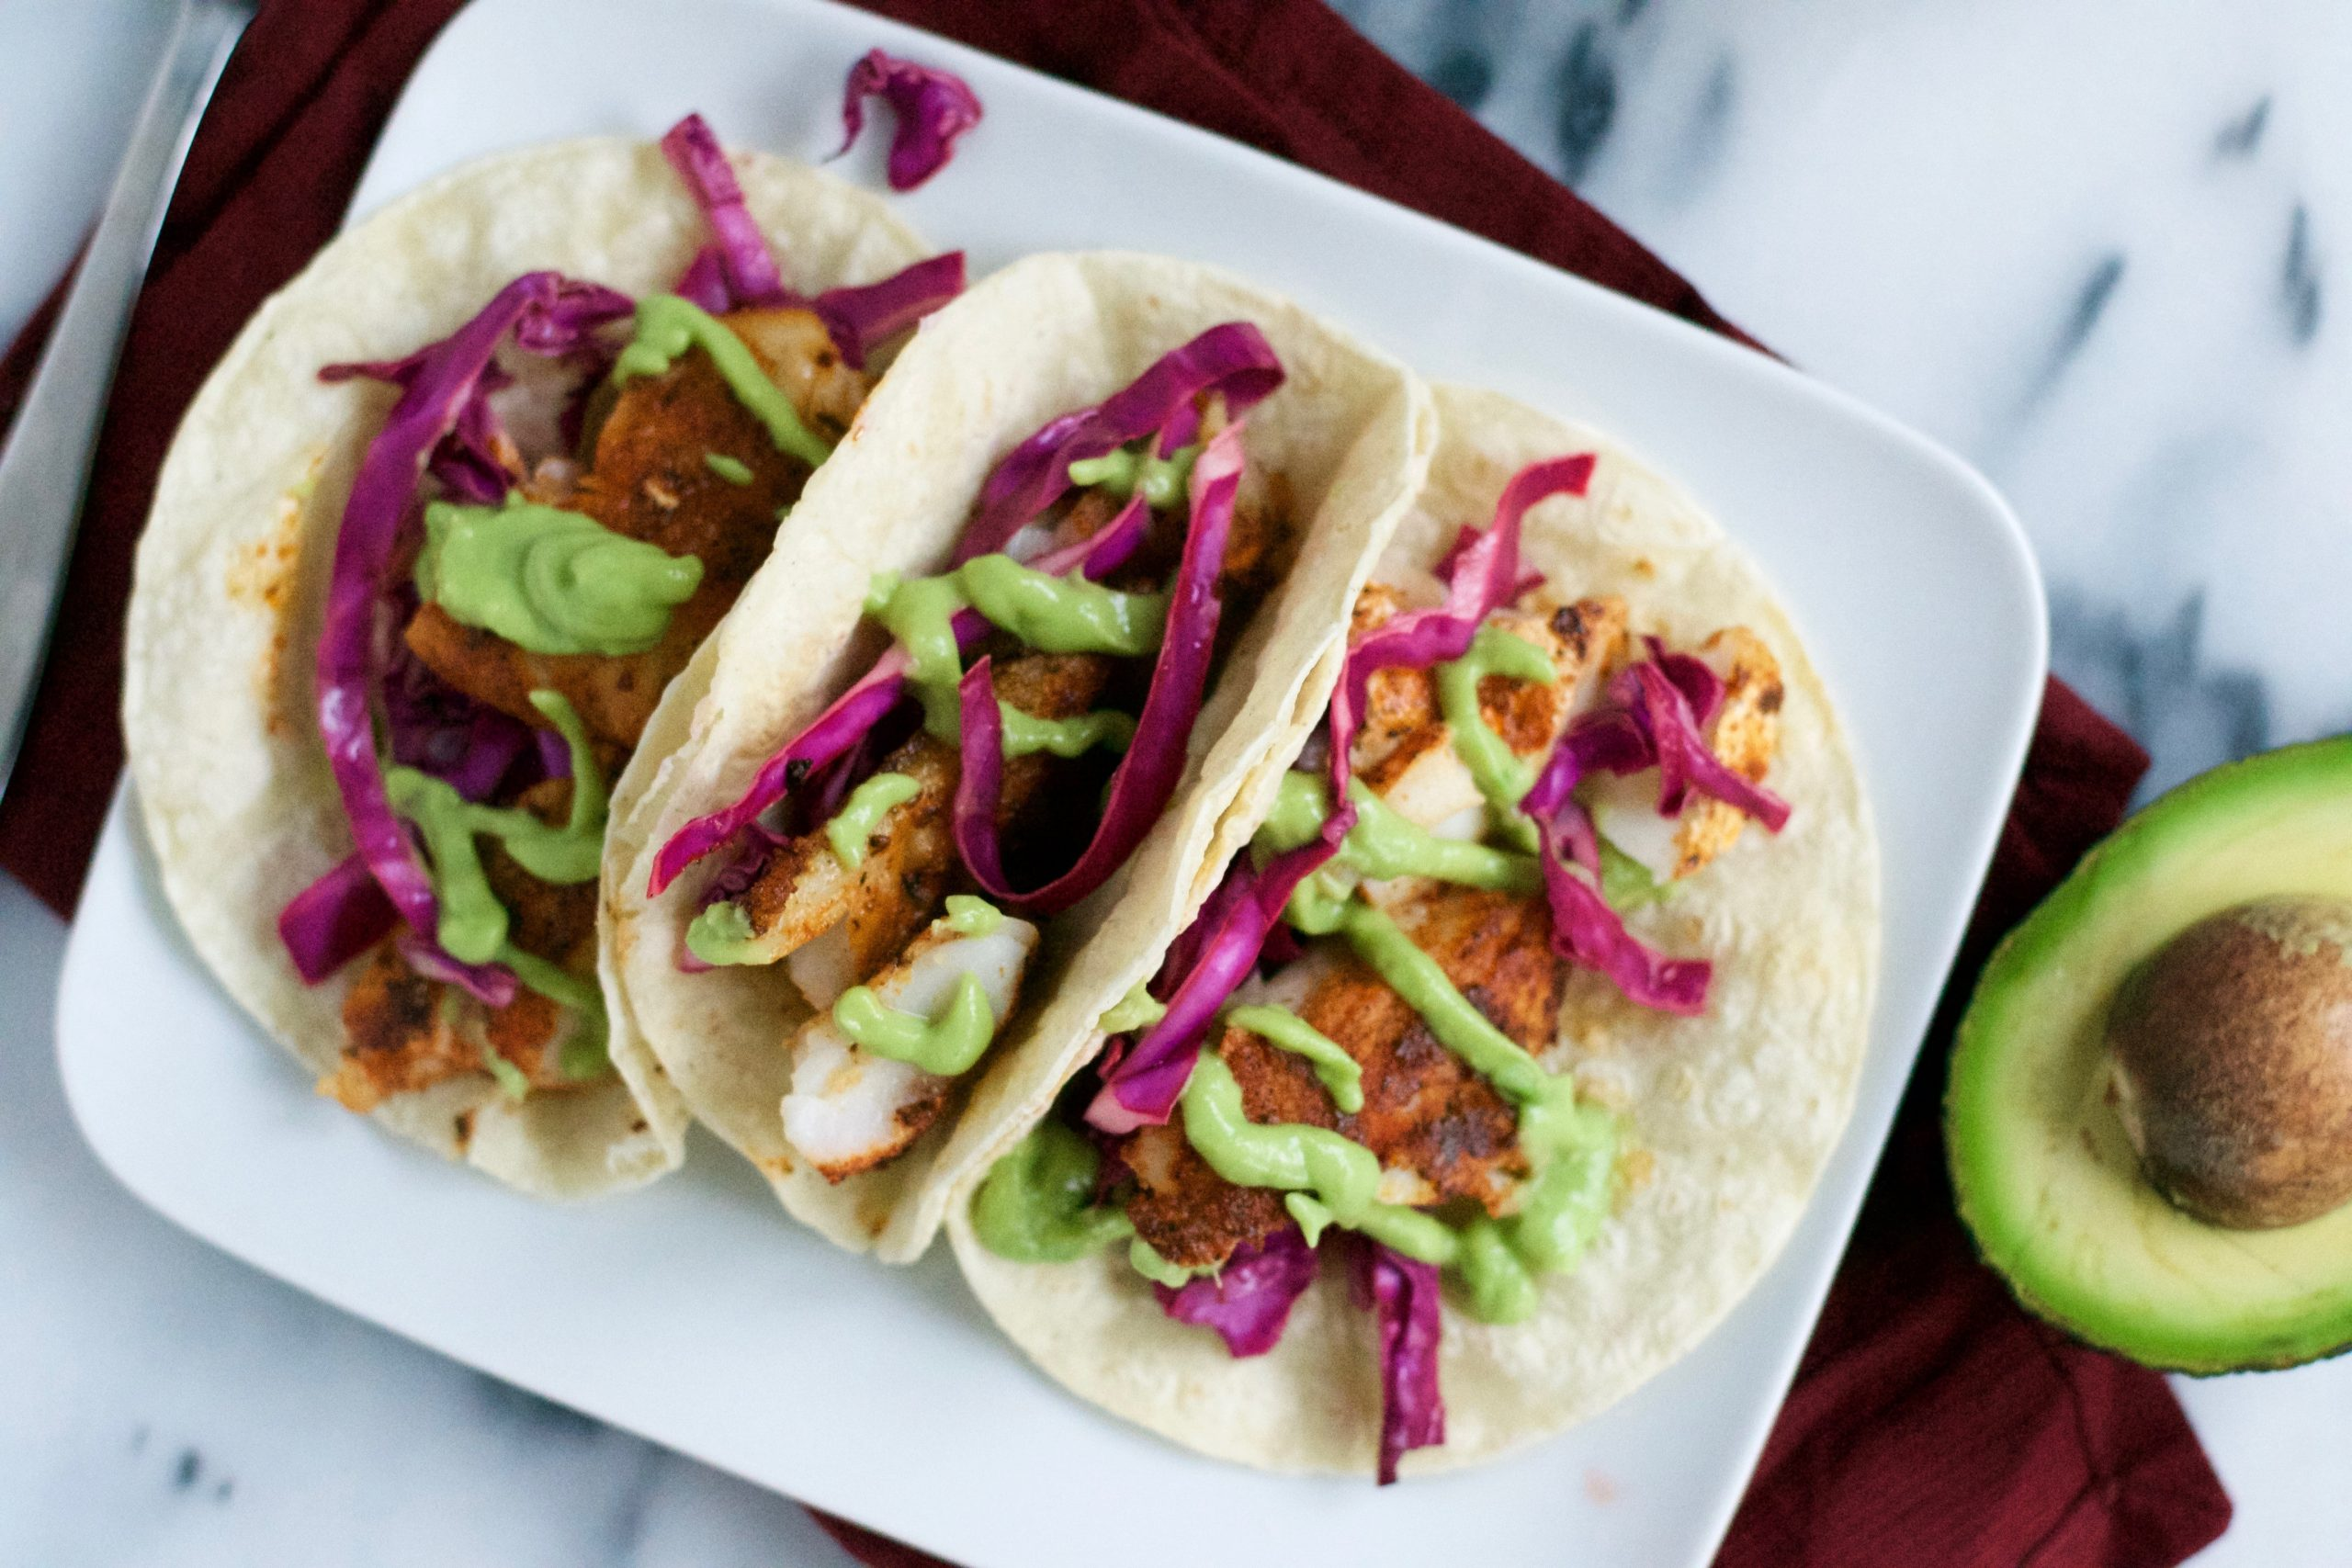 Blackened fish tacos with avocado crema a dash of megnut for Blackened fish tacos